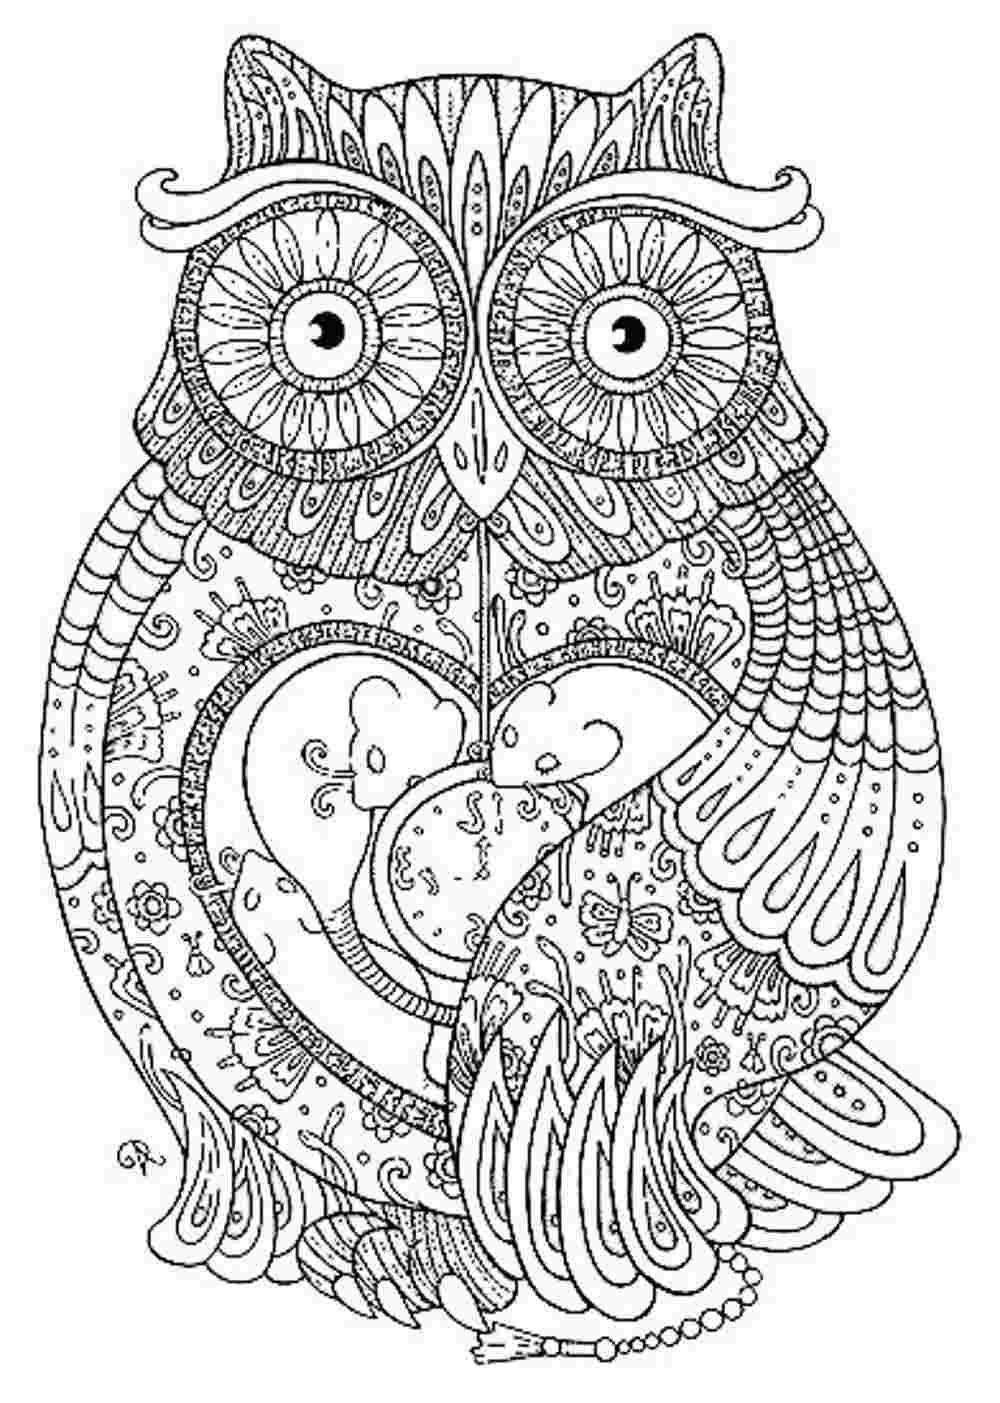 Colouring in pages mandala - Animal Mandala Coloring Pages To Download And Print For Free